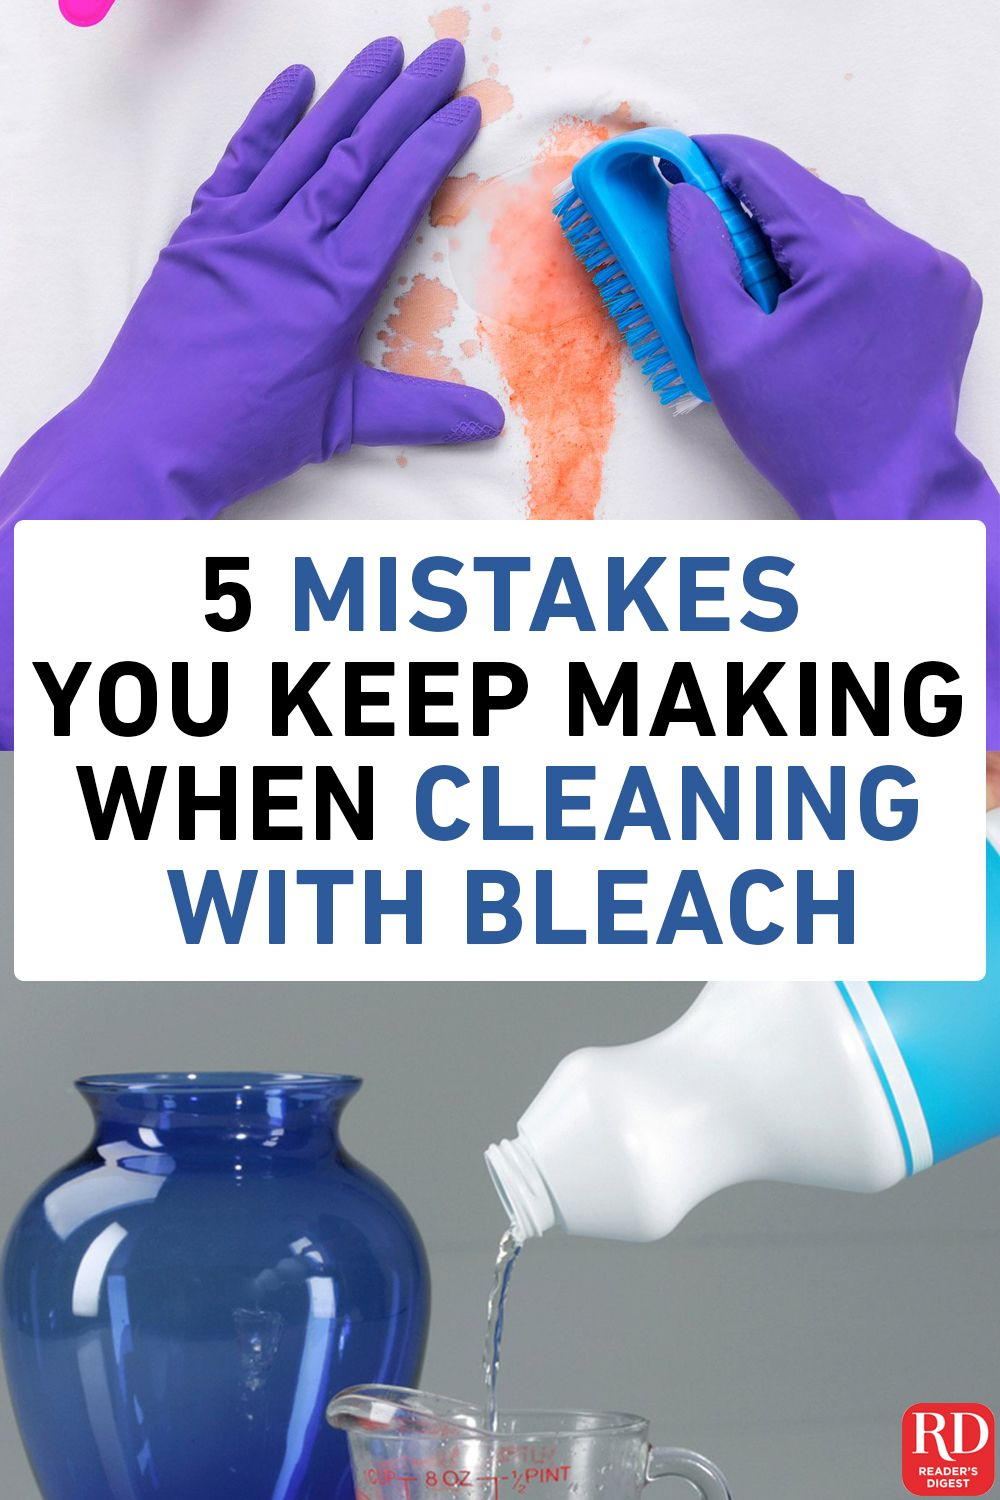 5 Mistakes You Keep Making When Cleaning with Bleach